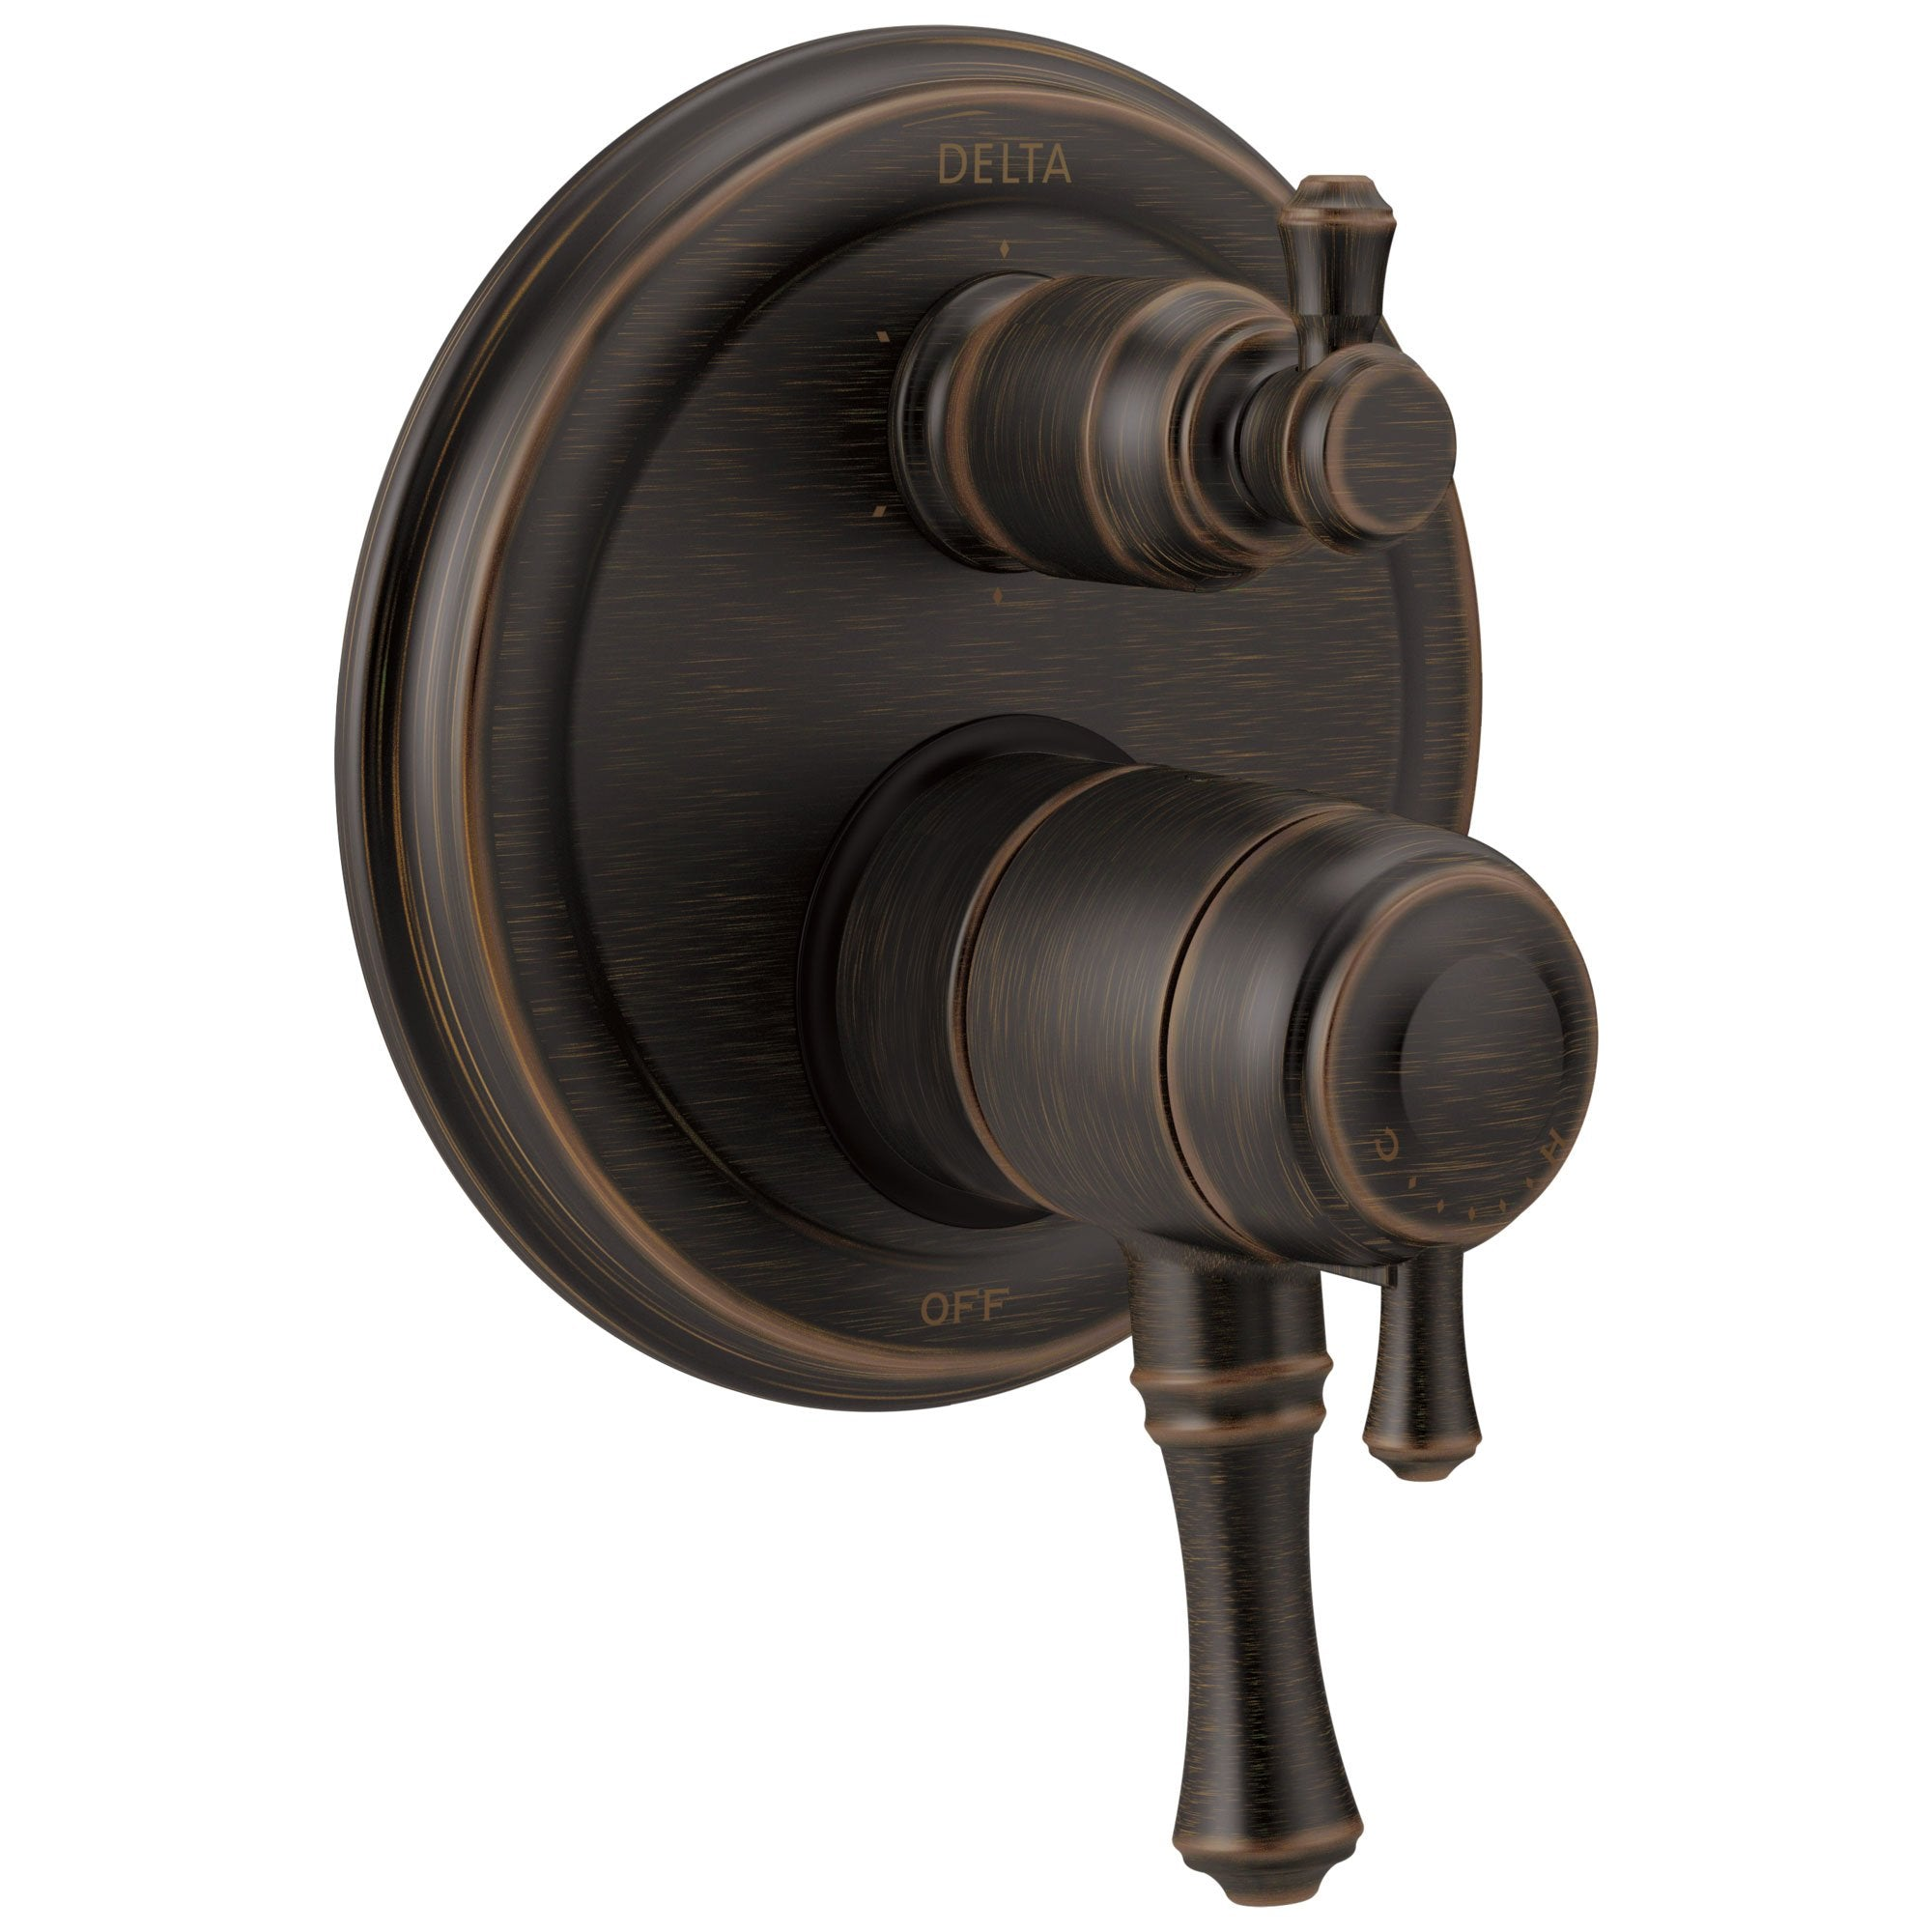 Delta Cassidy Venetian Bronze Traditional Shower Faucet Control Handle with 6-Setting Integrated Diverter Includes Trim Kit and Valve without Stops D2144V